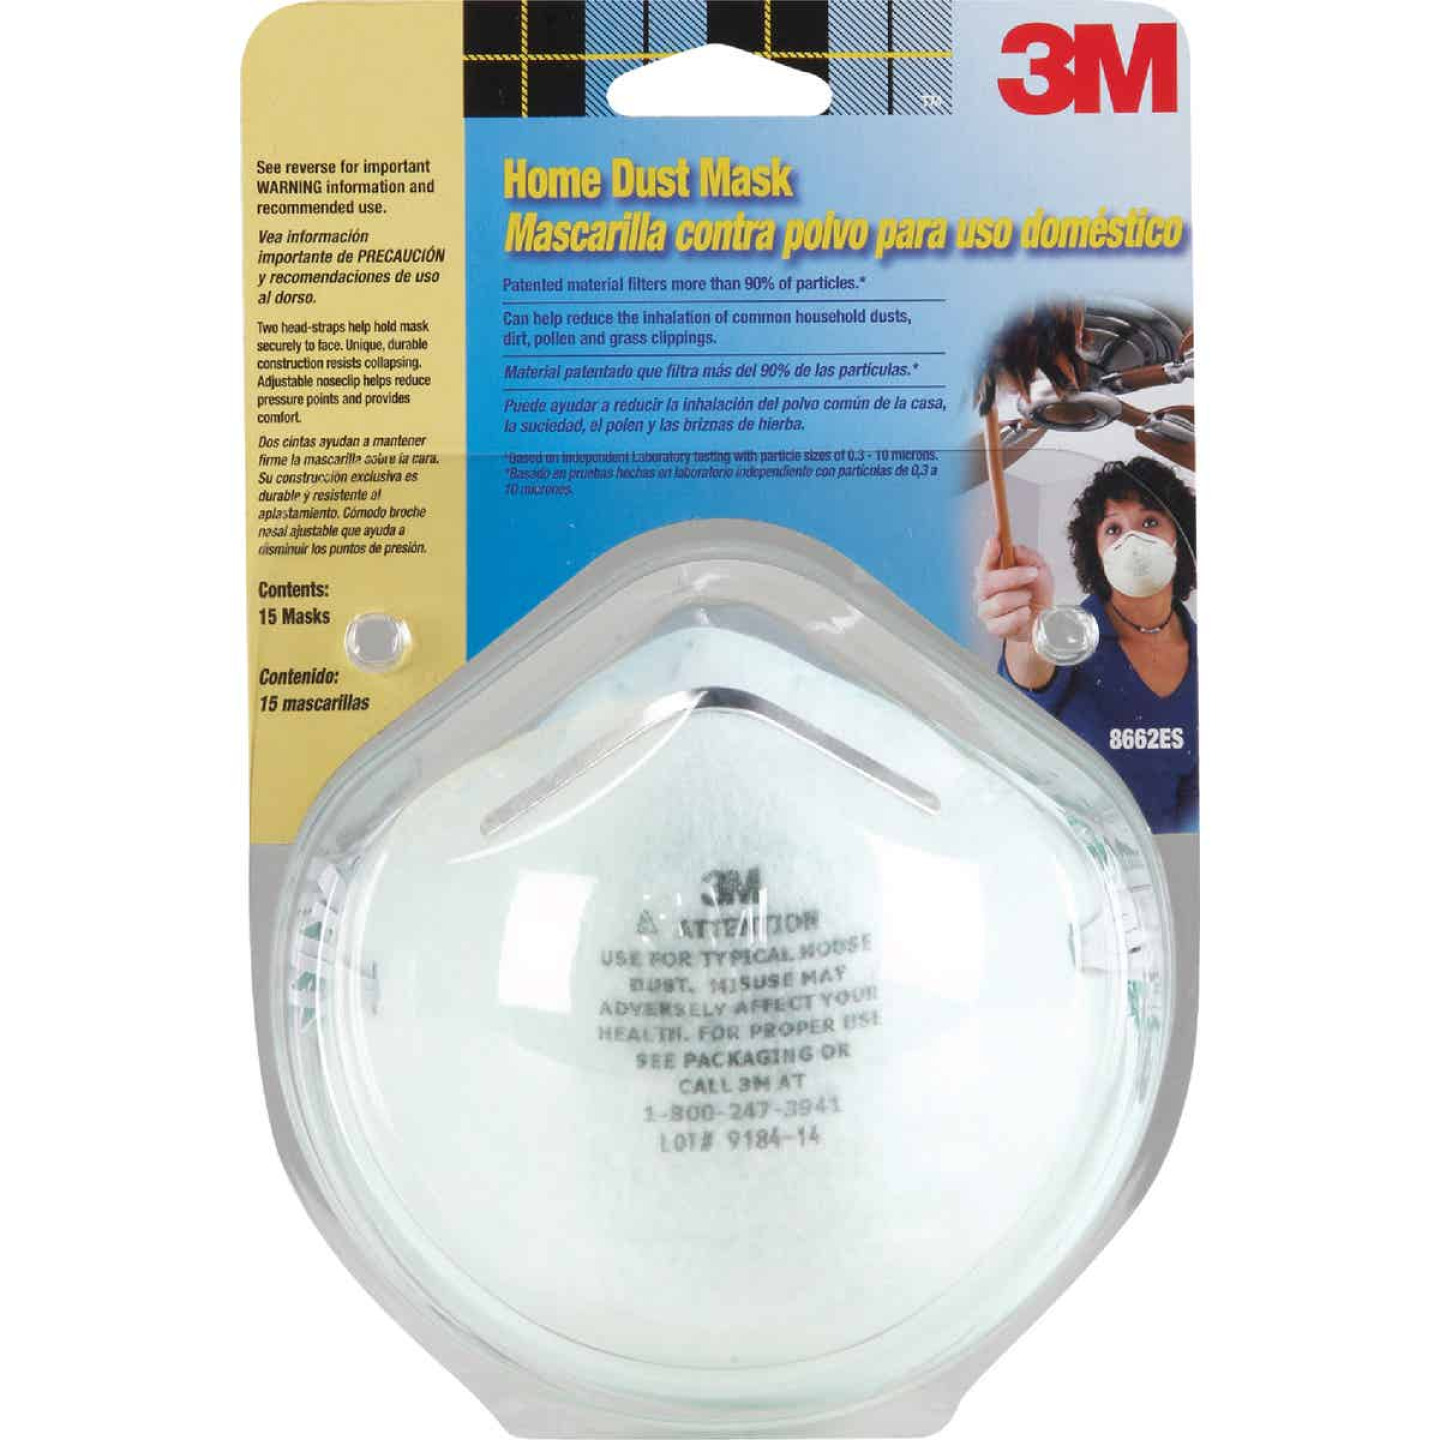 3M Disposable Home Dust Mask (15-Pack) Image 1